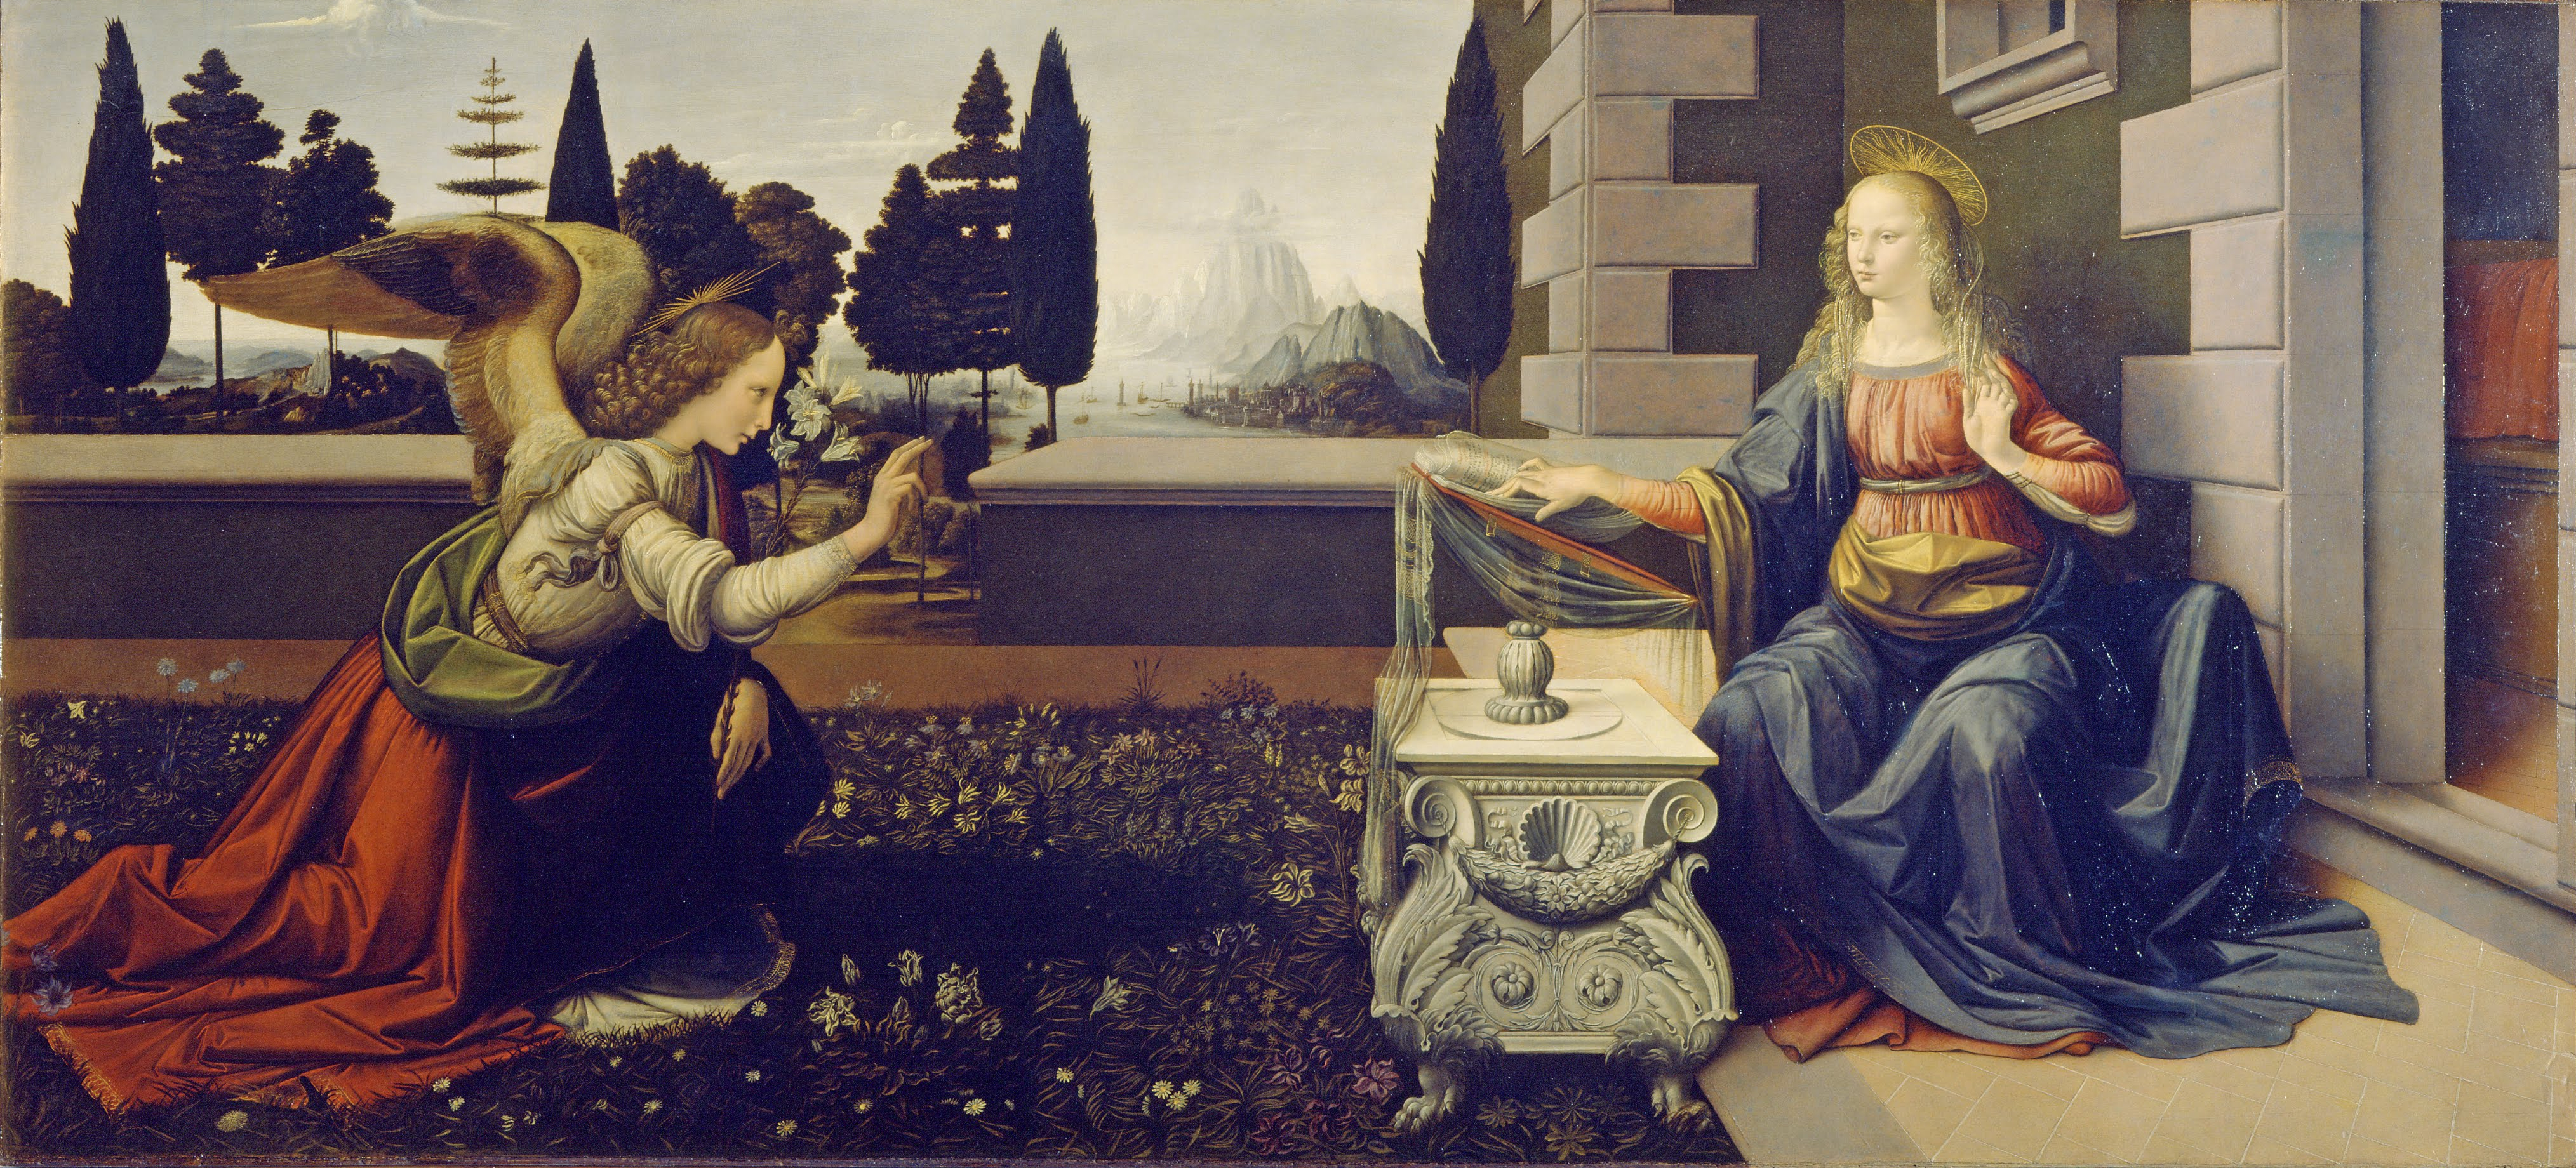 By Leonardo da Vinci - sAErNLFH1KFYmw at Google Cultural Institute, Public Domain.